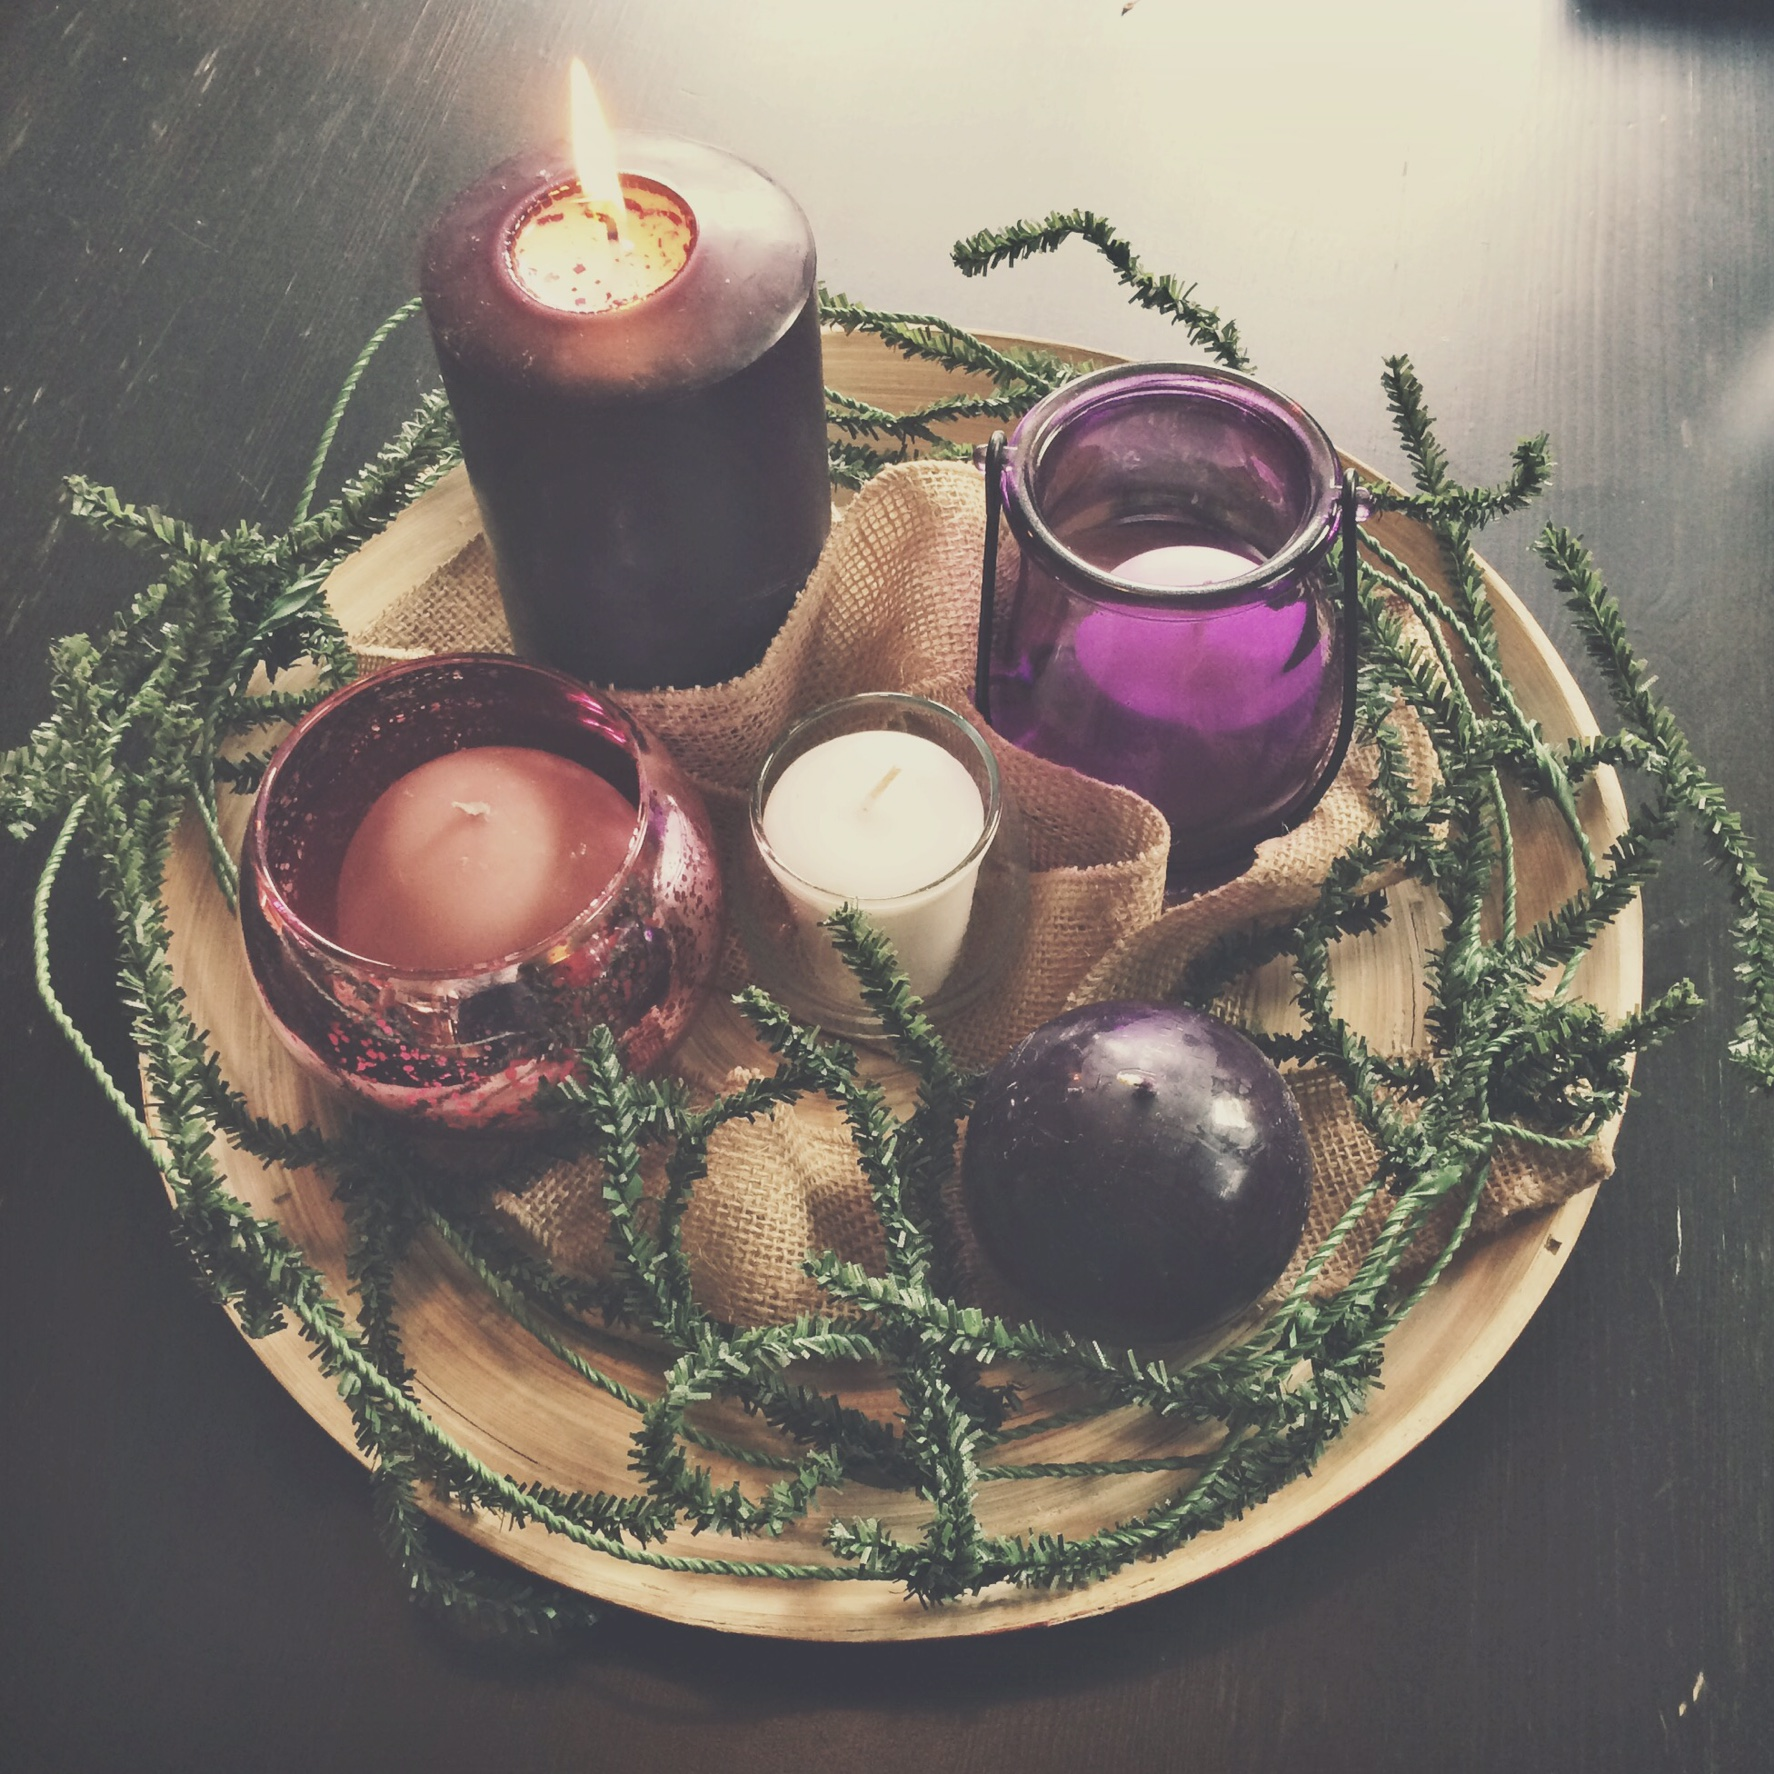 An Advent wreath I put together for our community this year––one of my favorite symbols of the season, layered with meaning. In the shape of a circle to symbolize the eternal nature of God, in Whom there is no beginning nor end. Green to symbolize everlasting life and the exhaustless mercy of God. 3 purple candles that mark the weeks of fasting, mourning, waiting, longing. The 1 pink candle that marks our shift to rejoicing and celebrating the birth of the incarnate God. And finally, the 1white candle in the center, the Christ candle, symbolizing the perfection and completion that is embodied in Jesus.